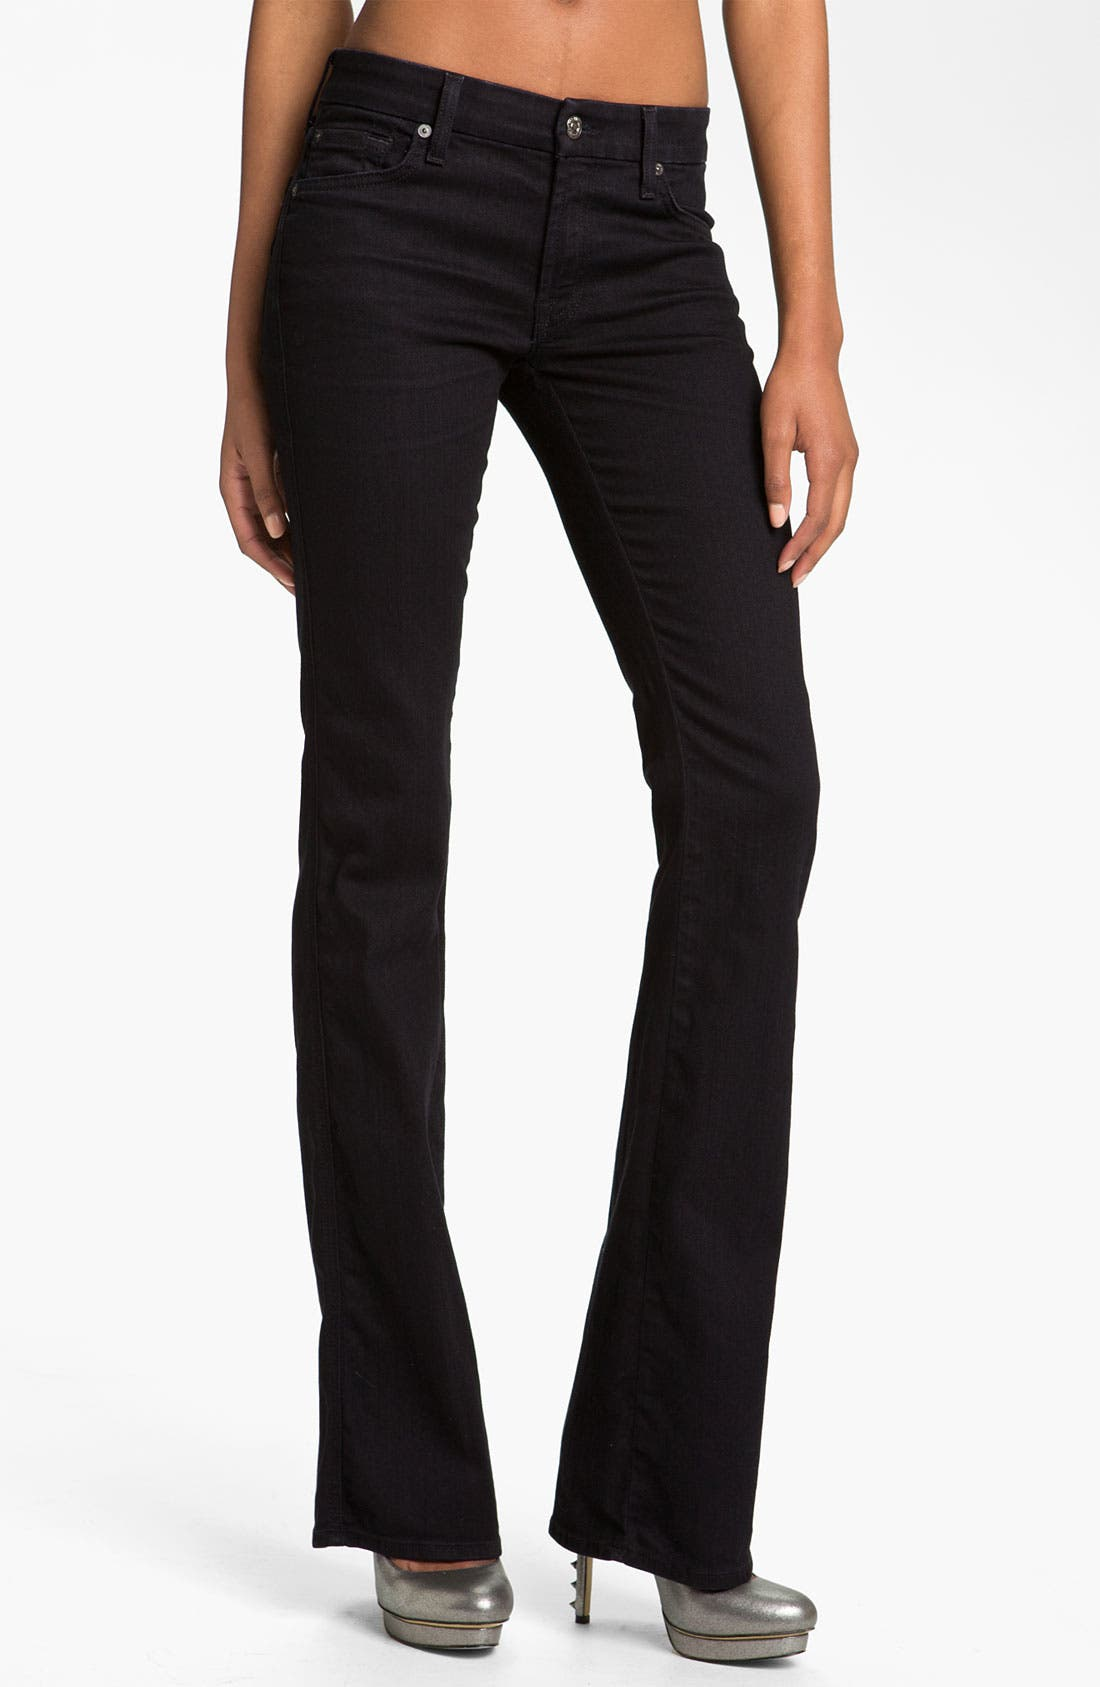 Alternate Image 1 Selected - 7 For All Mankind® 'Kimmie' Straight Leg Jeans (Black Coal)